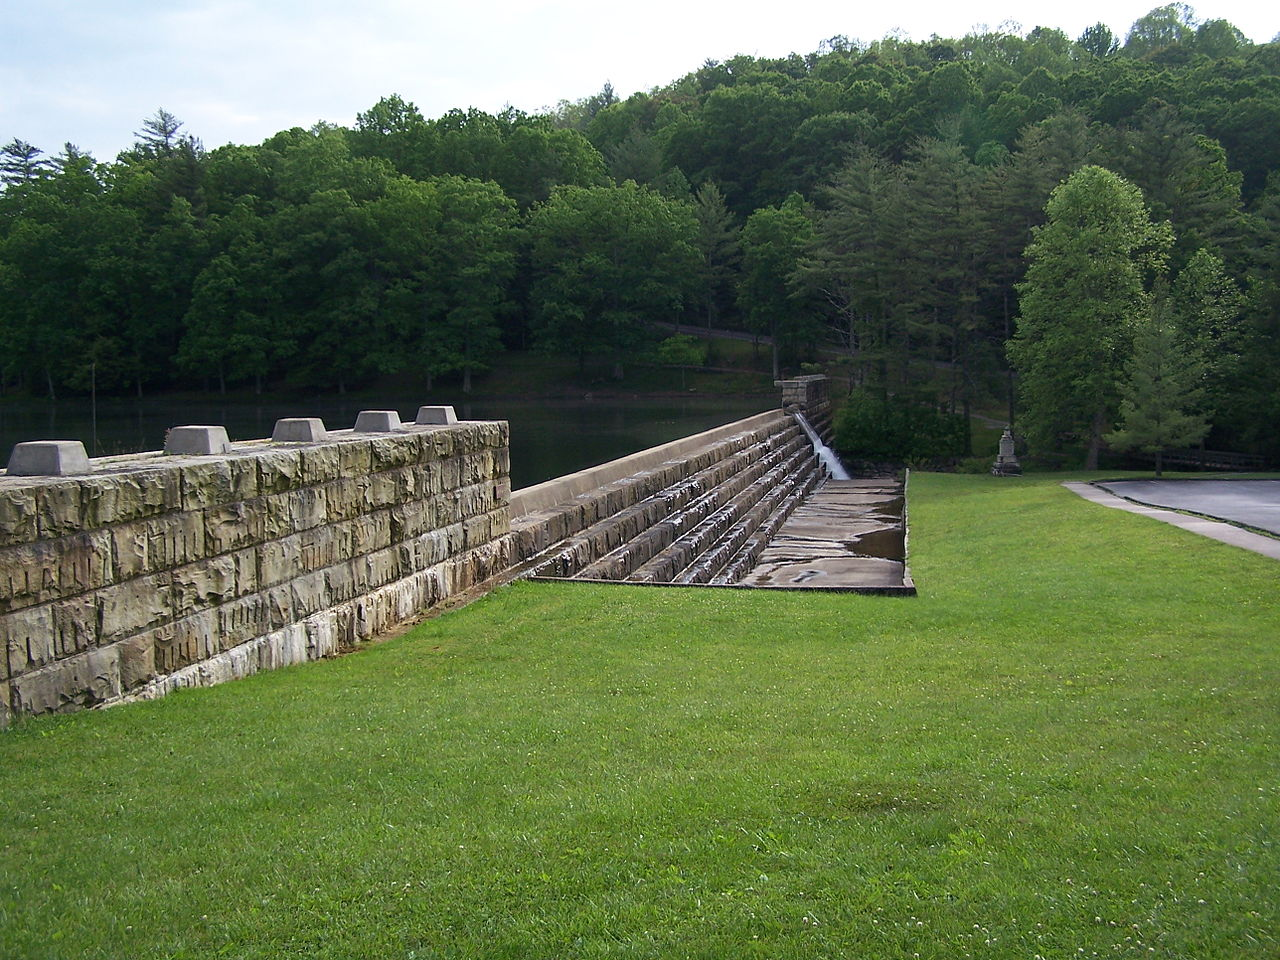 The dam at Little Beaver State Park